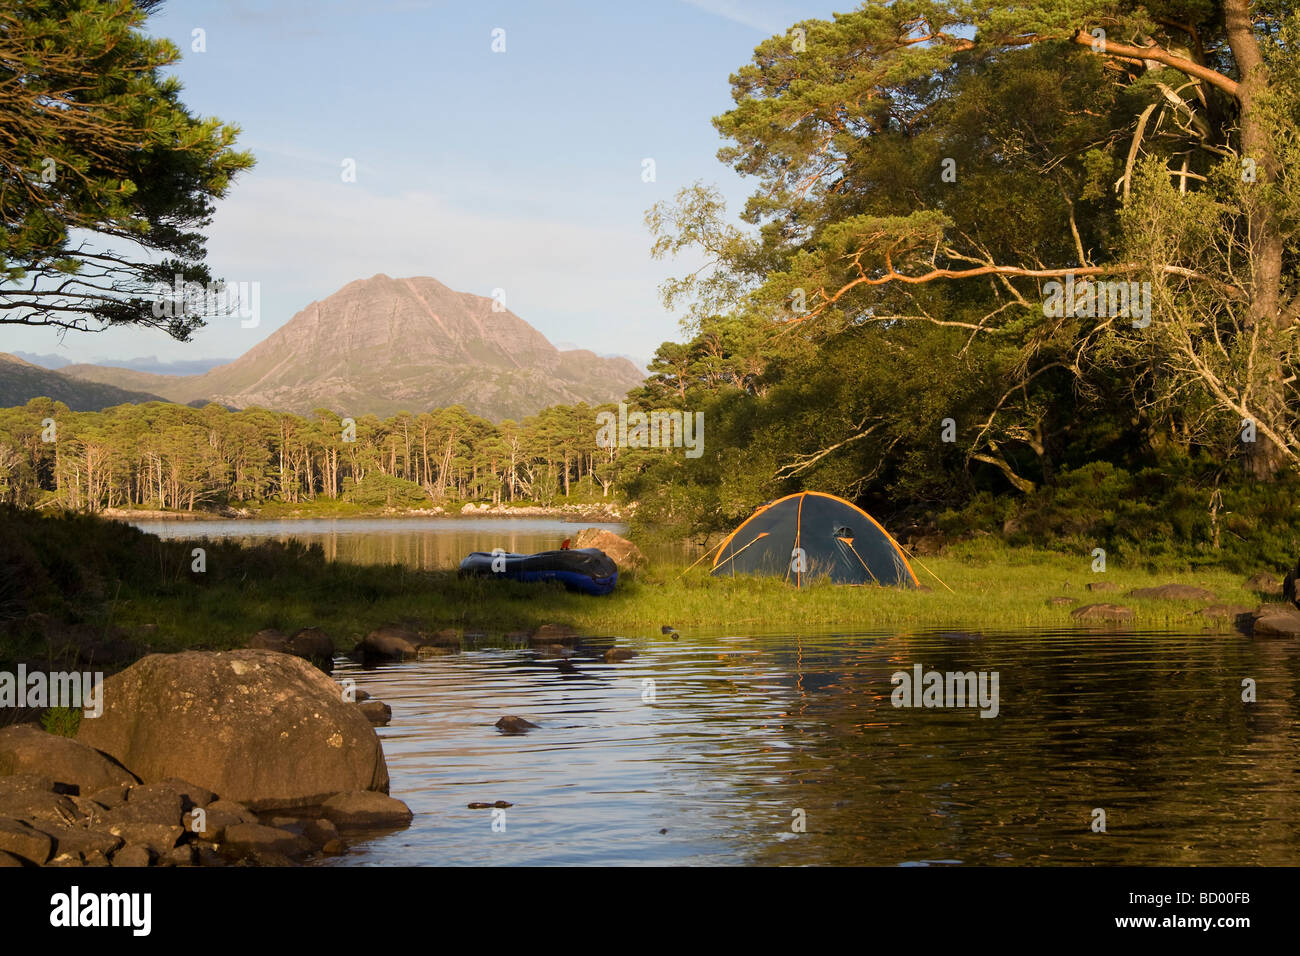 Tent and canoe on an island on Loch Maree, Wester Ross, Scotland - Stock Image